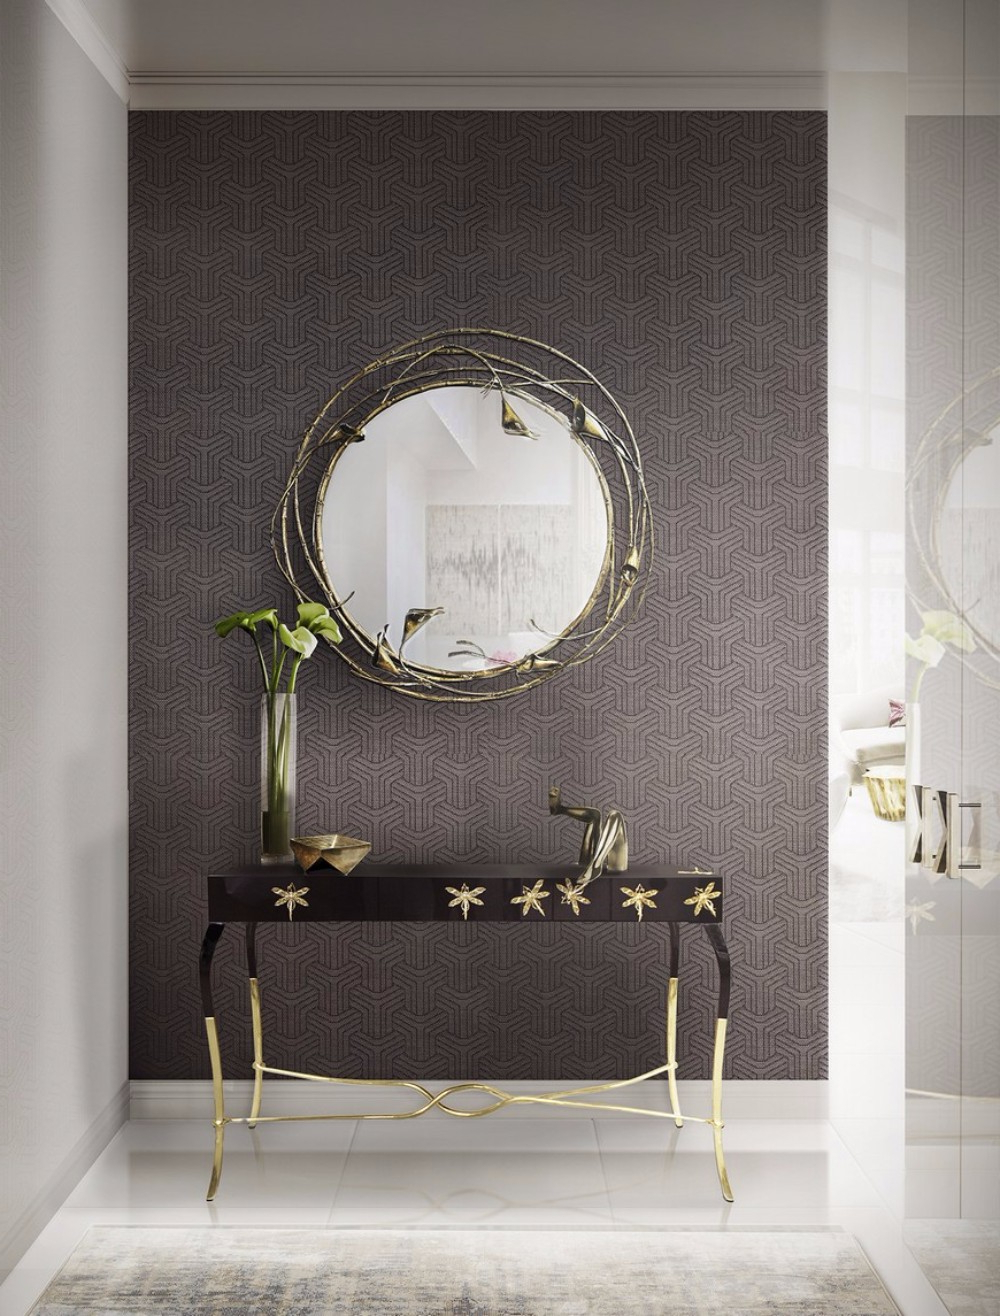 20 Exquisite Wall Mirror Designs For Your Living Room For Well Liked Wall Mirrors Designs (View 4 of 20)